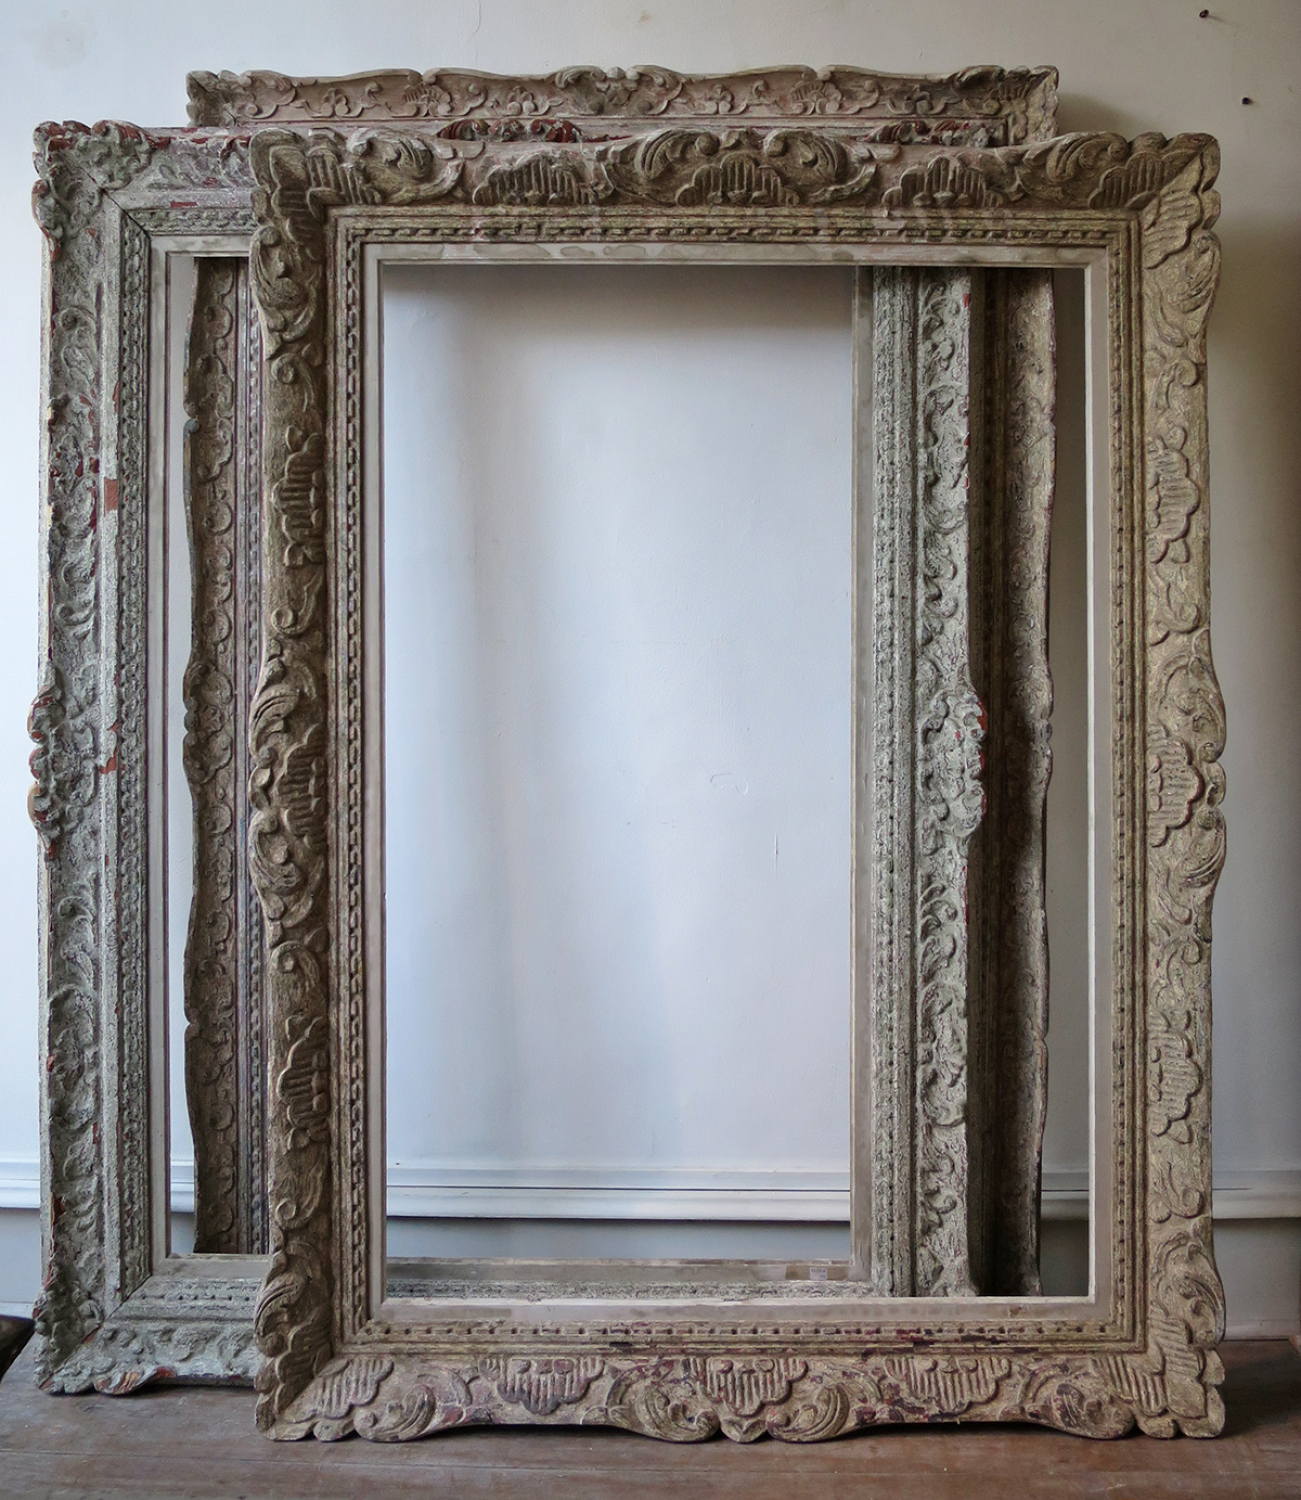 Large 19th century French Frames